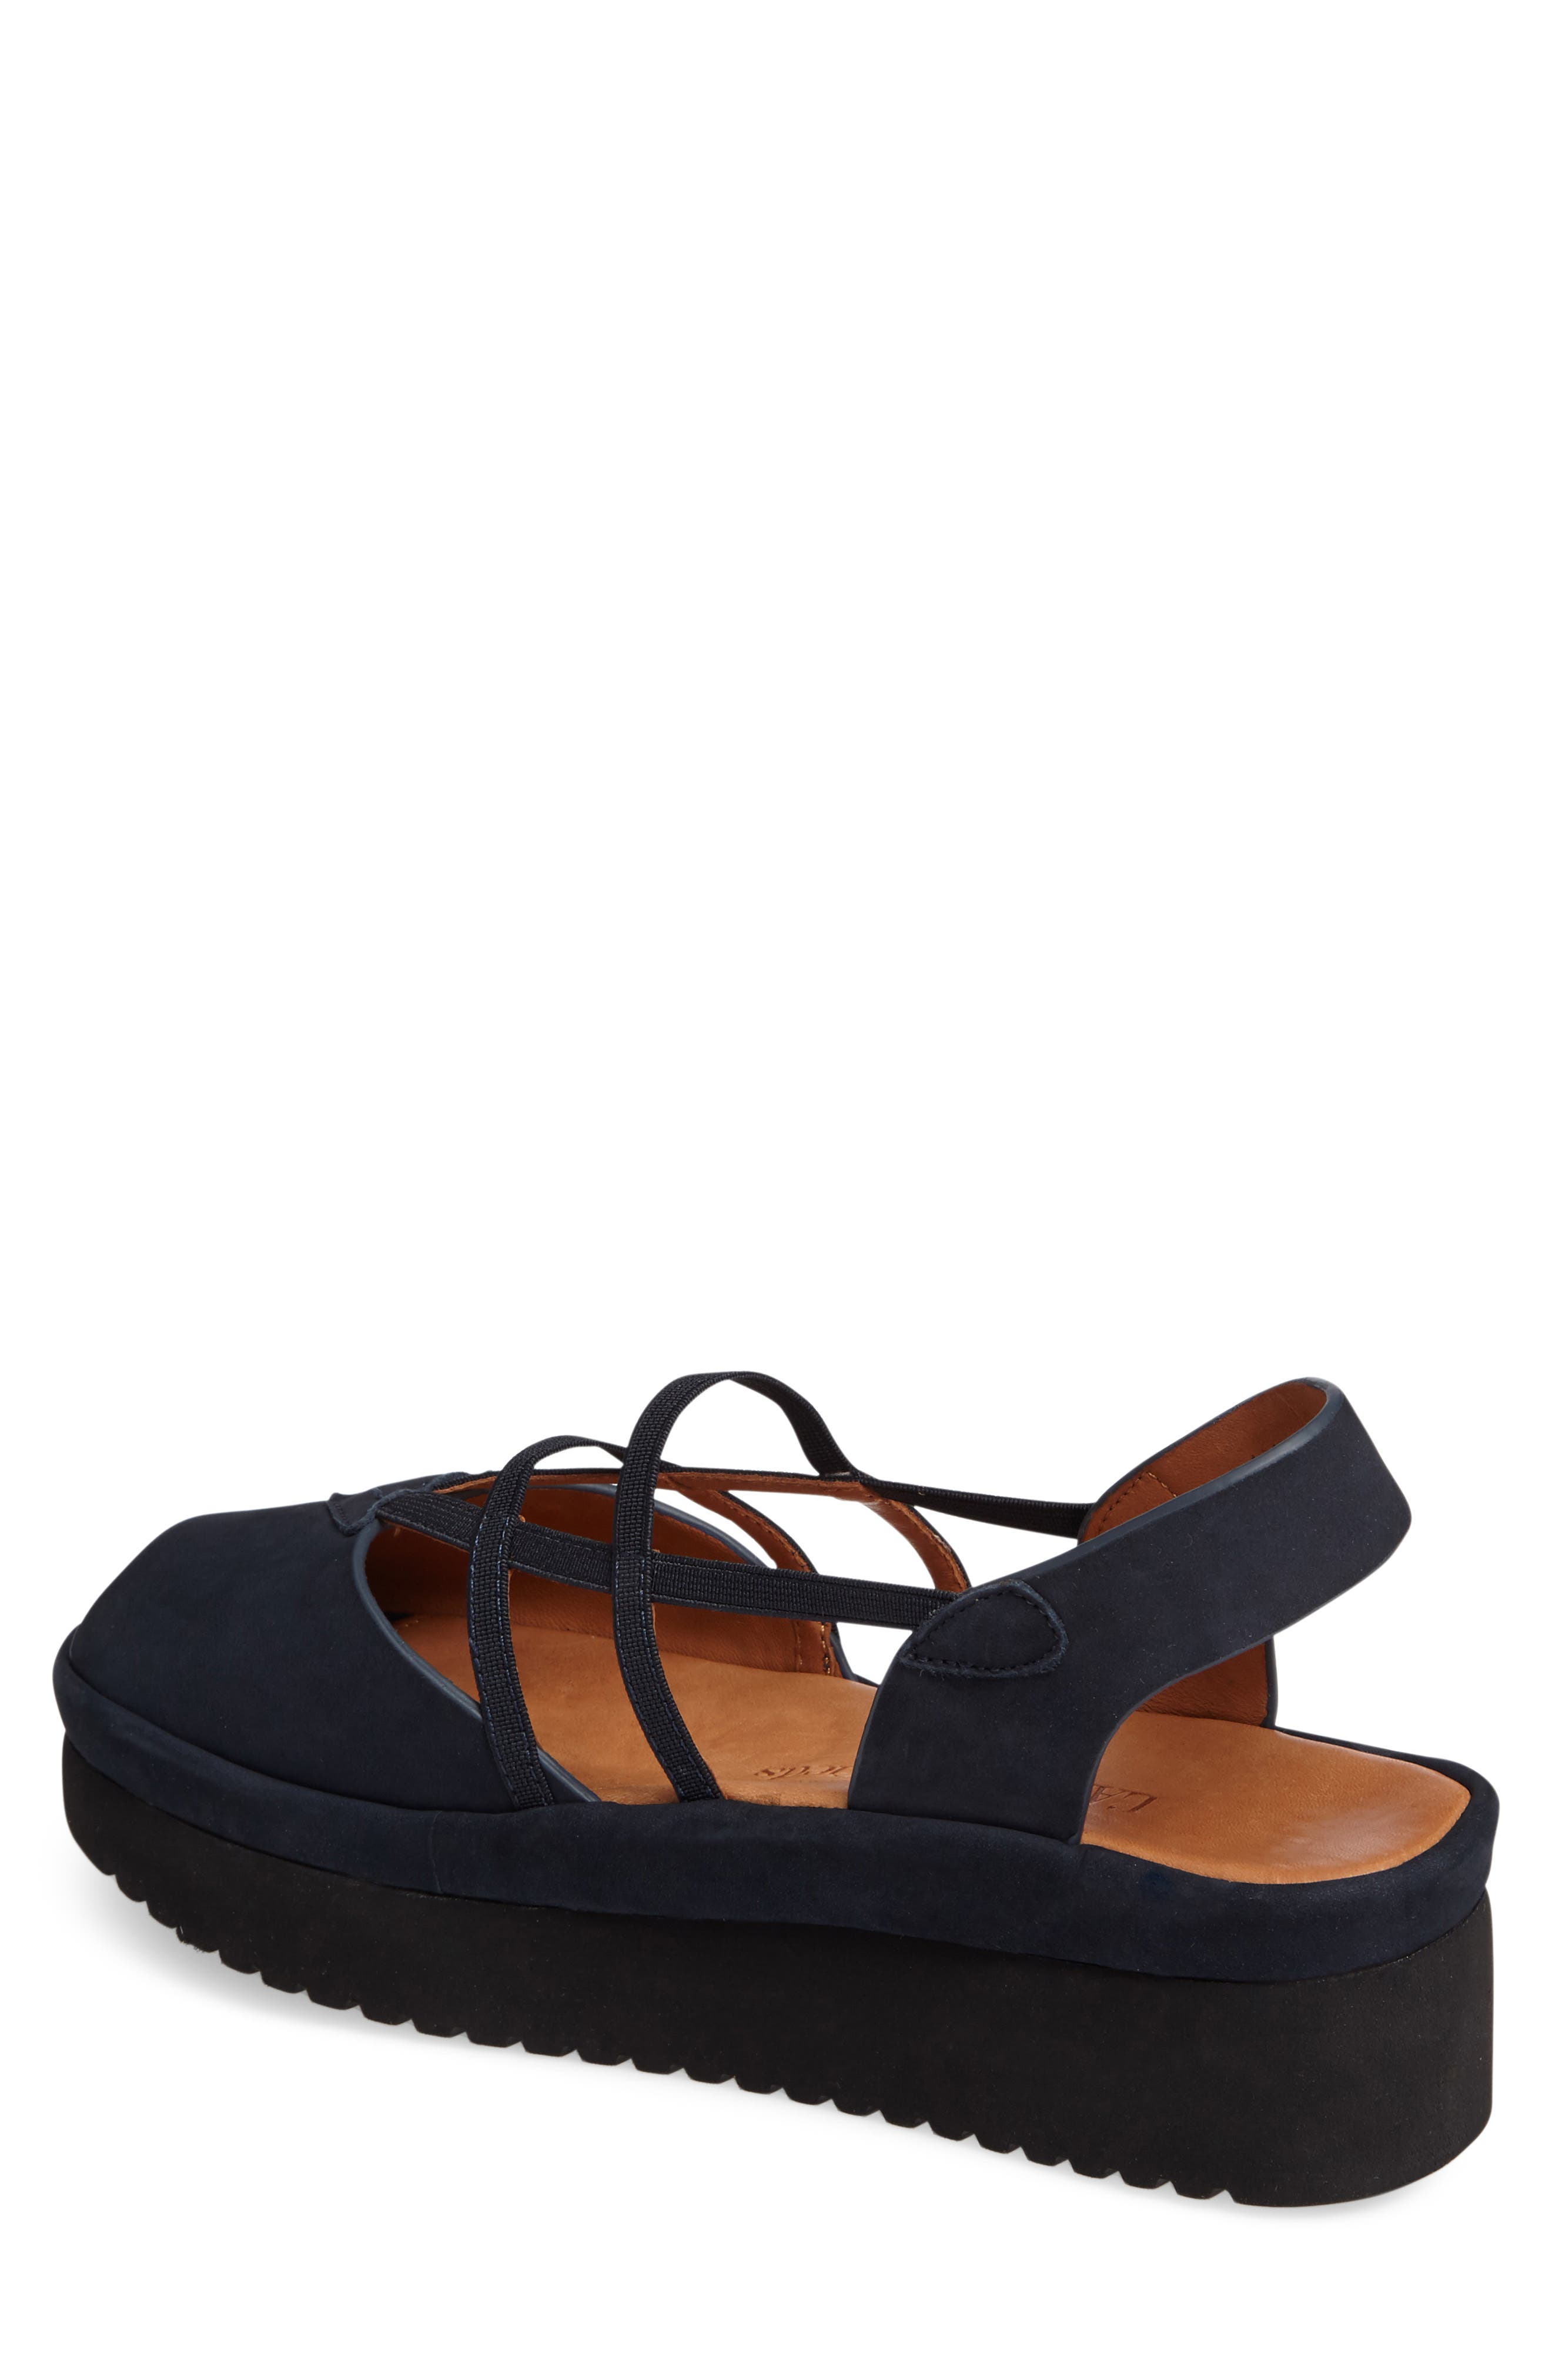 Adelais Platform Wedge Sandal,                             Alternate thumbnail 2, color,                             NAVY NUBUCK